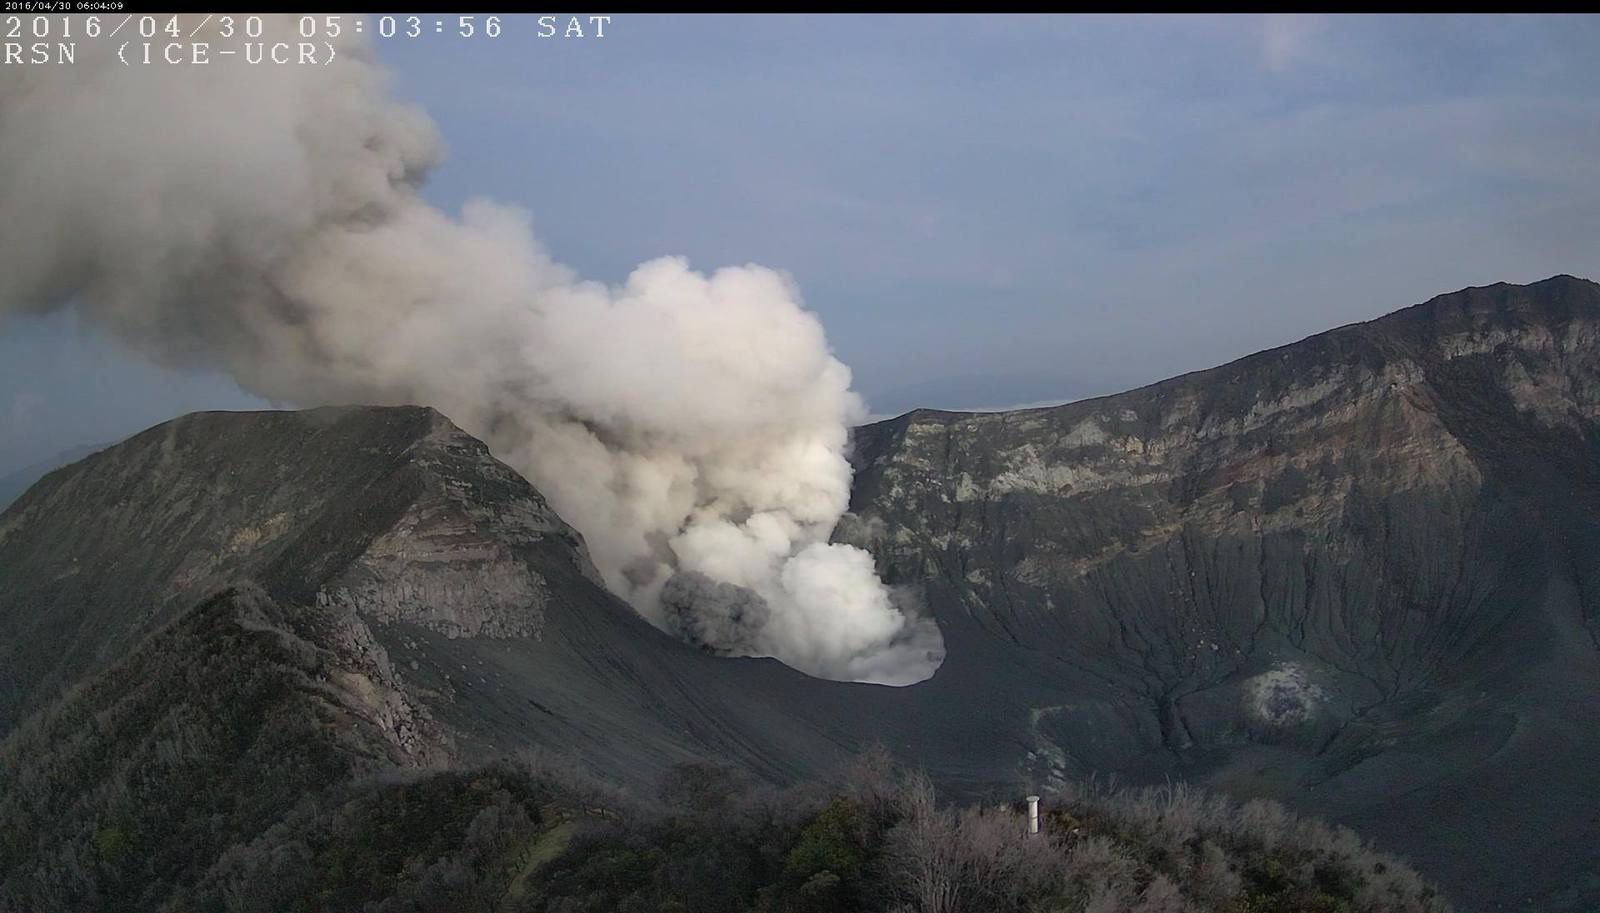 Turrialba - emissions 30.04.2016 / 5:03 - RSN webcam